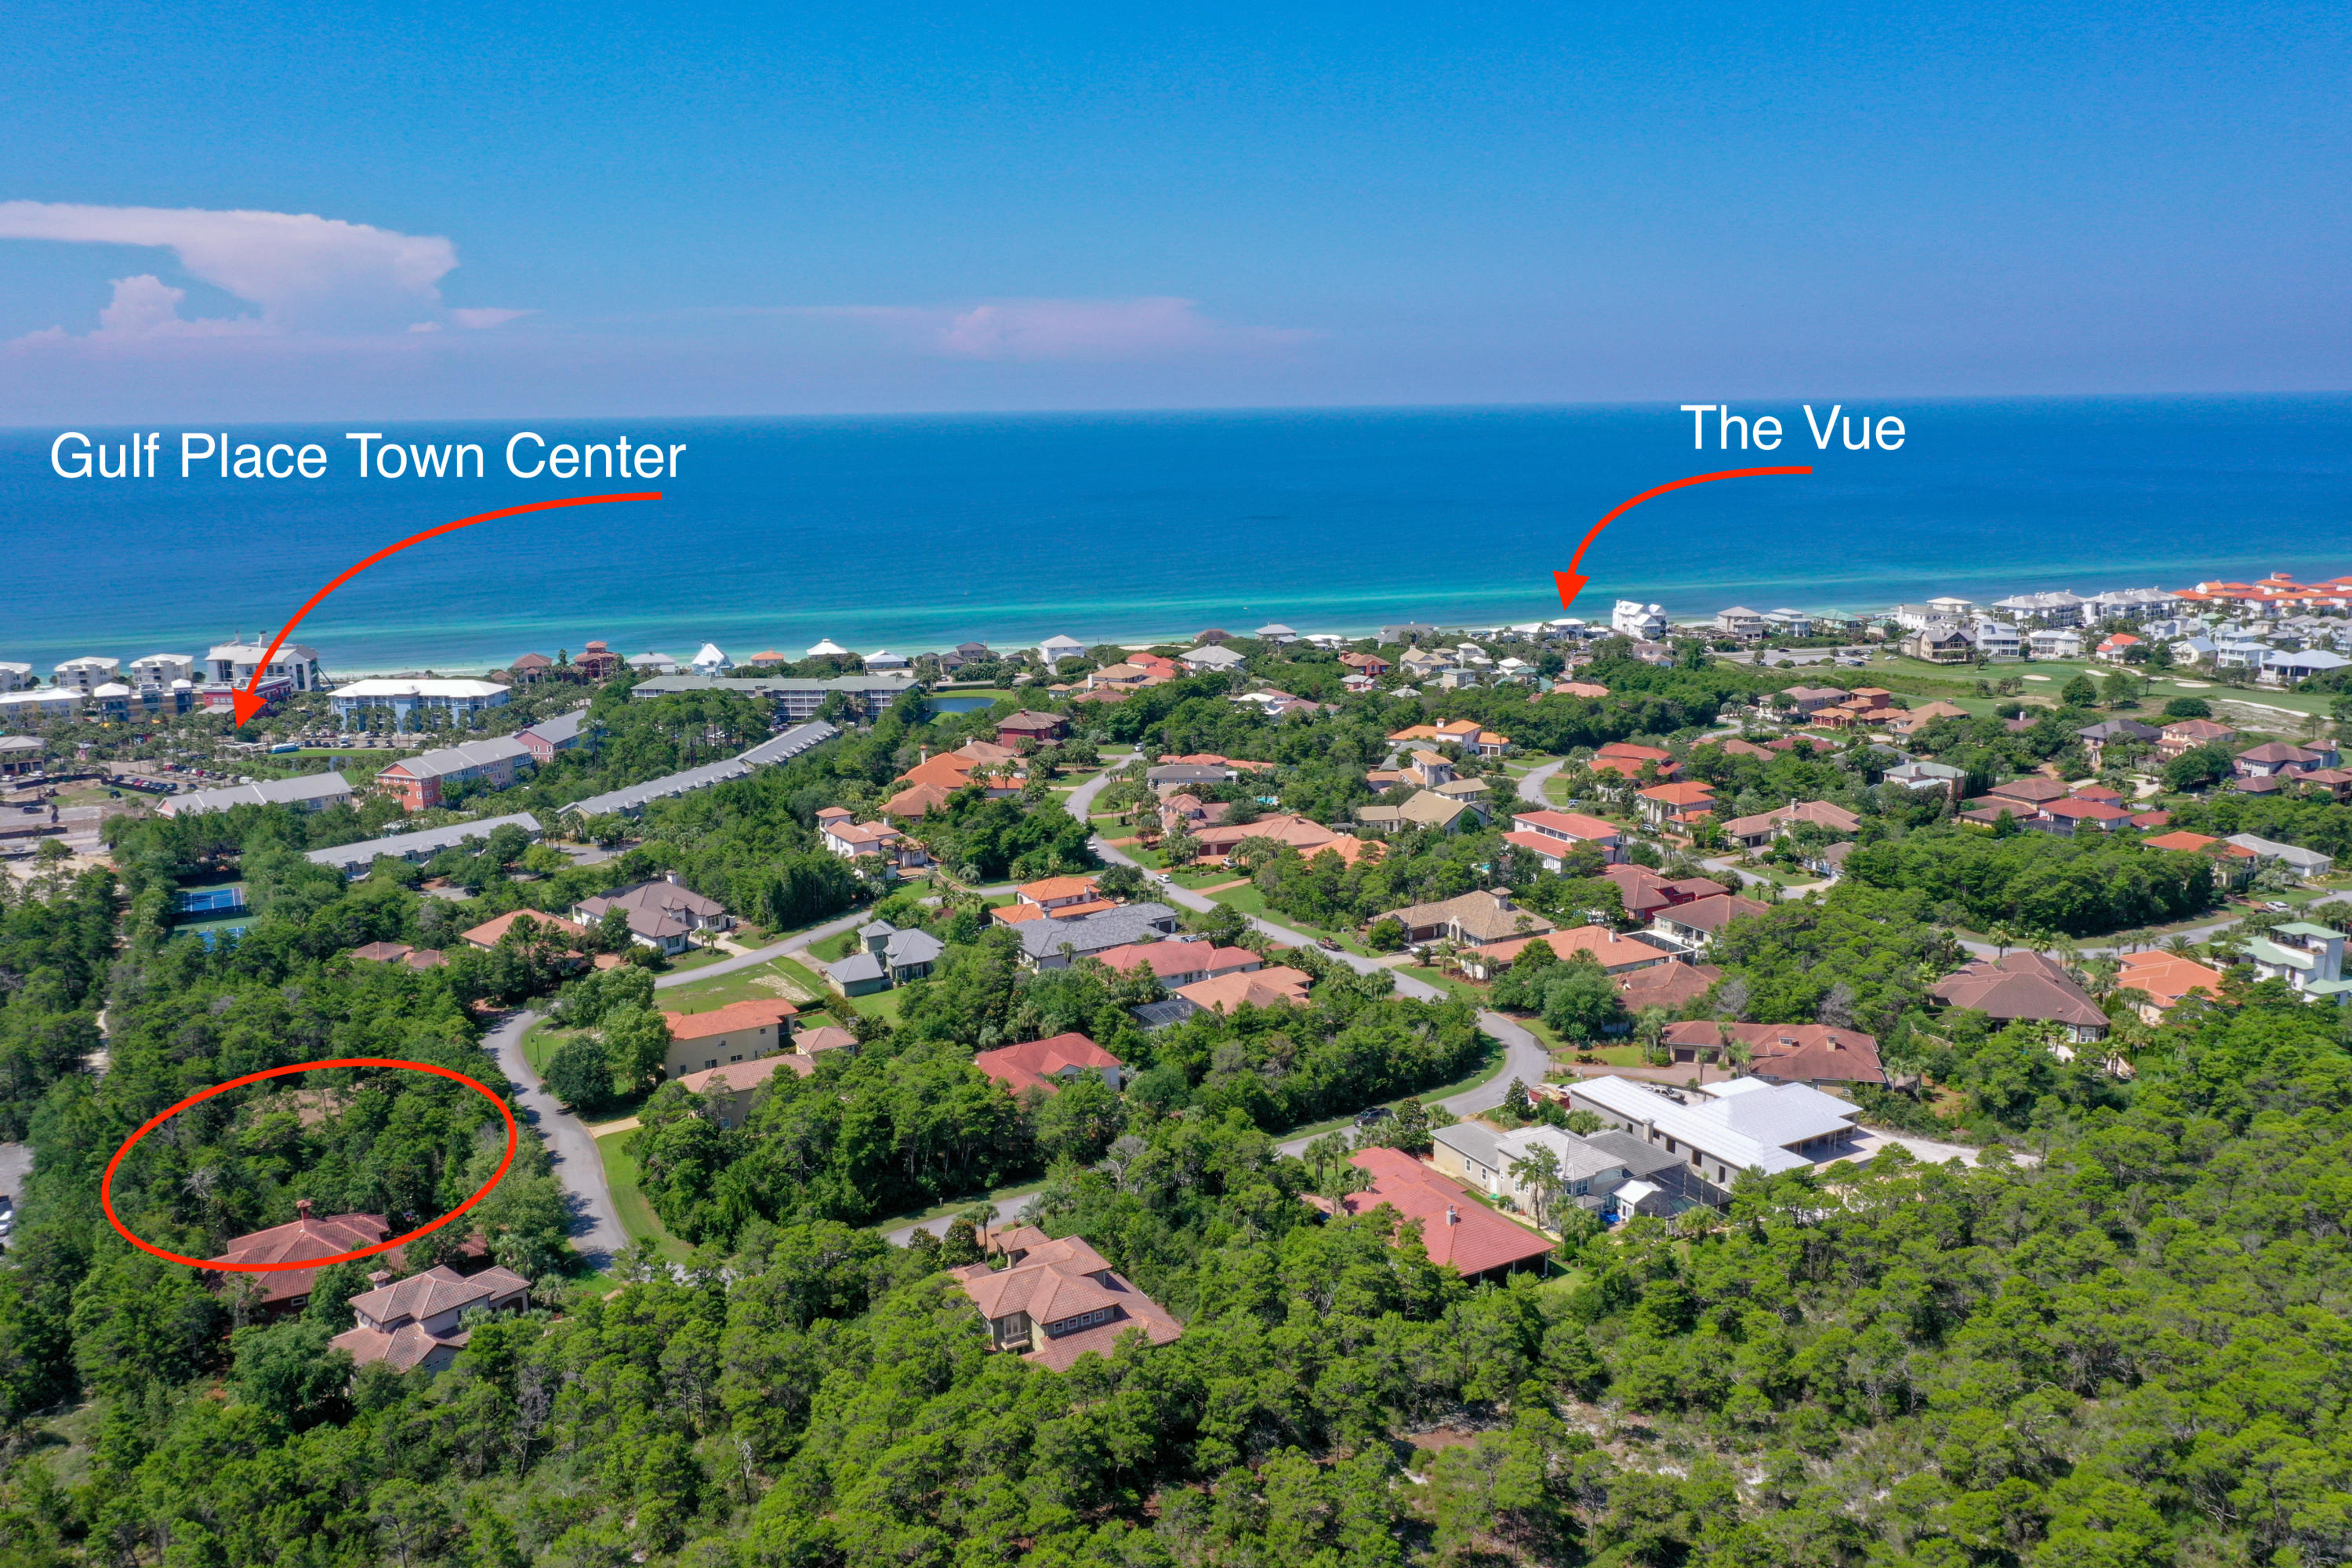 Build your Florida dream home in this exceptional gated  community across the street from the beautiful Gulf of Mexico.  At over 1/4 acre, this property is ideal for full time Florida living or a luxurious second home.  Watch sunsets from across the street at the VUE while dining at one of the areas premier restaurants.  Dedicated  beach access assures you will always have a path to the world's most beautiful beaches and emerald waters.  Shopping, dining, golf, walking trails and more are conveniently located nearby.  Make Bella Mar at Gulf Place your home for a lifetime..